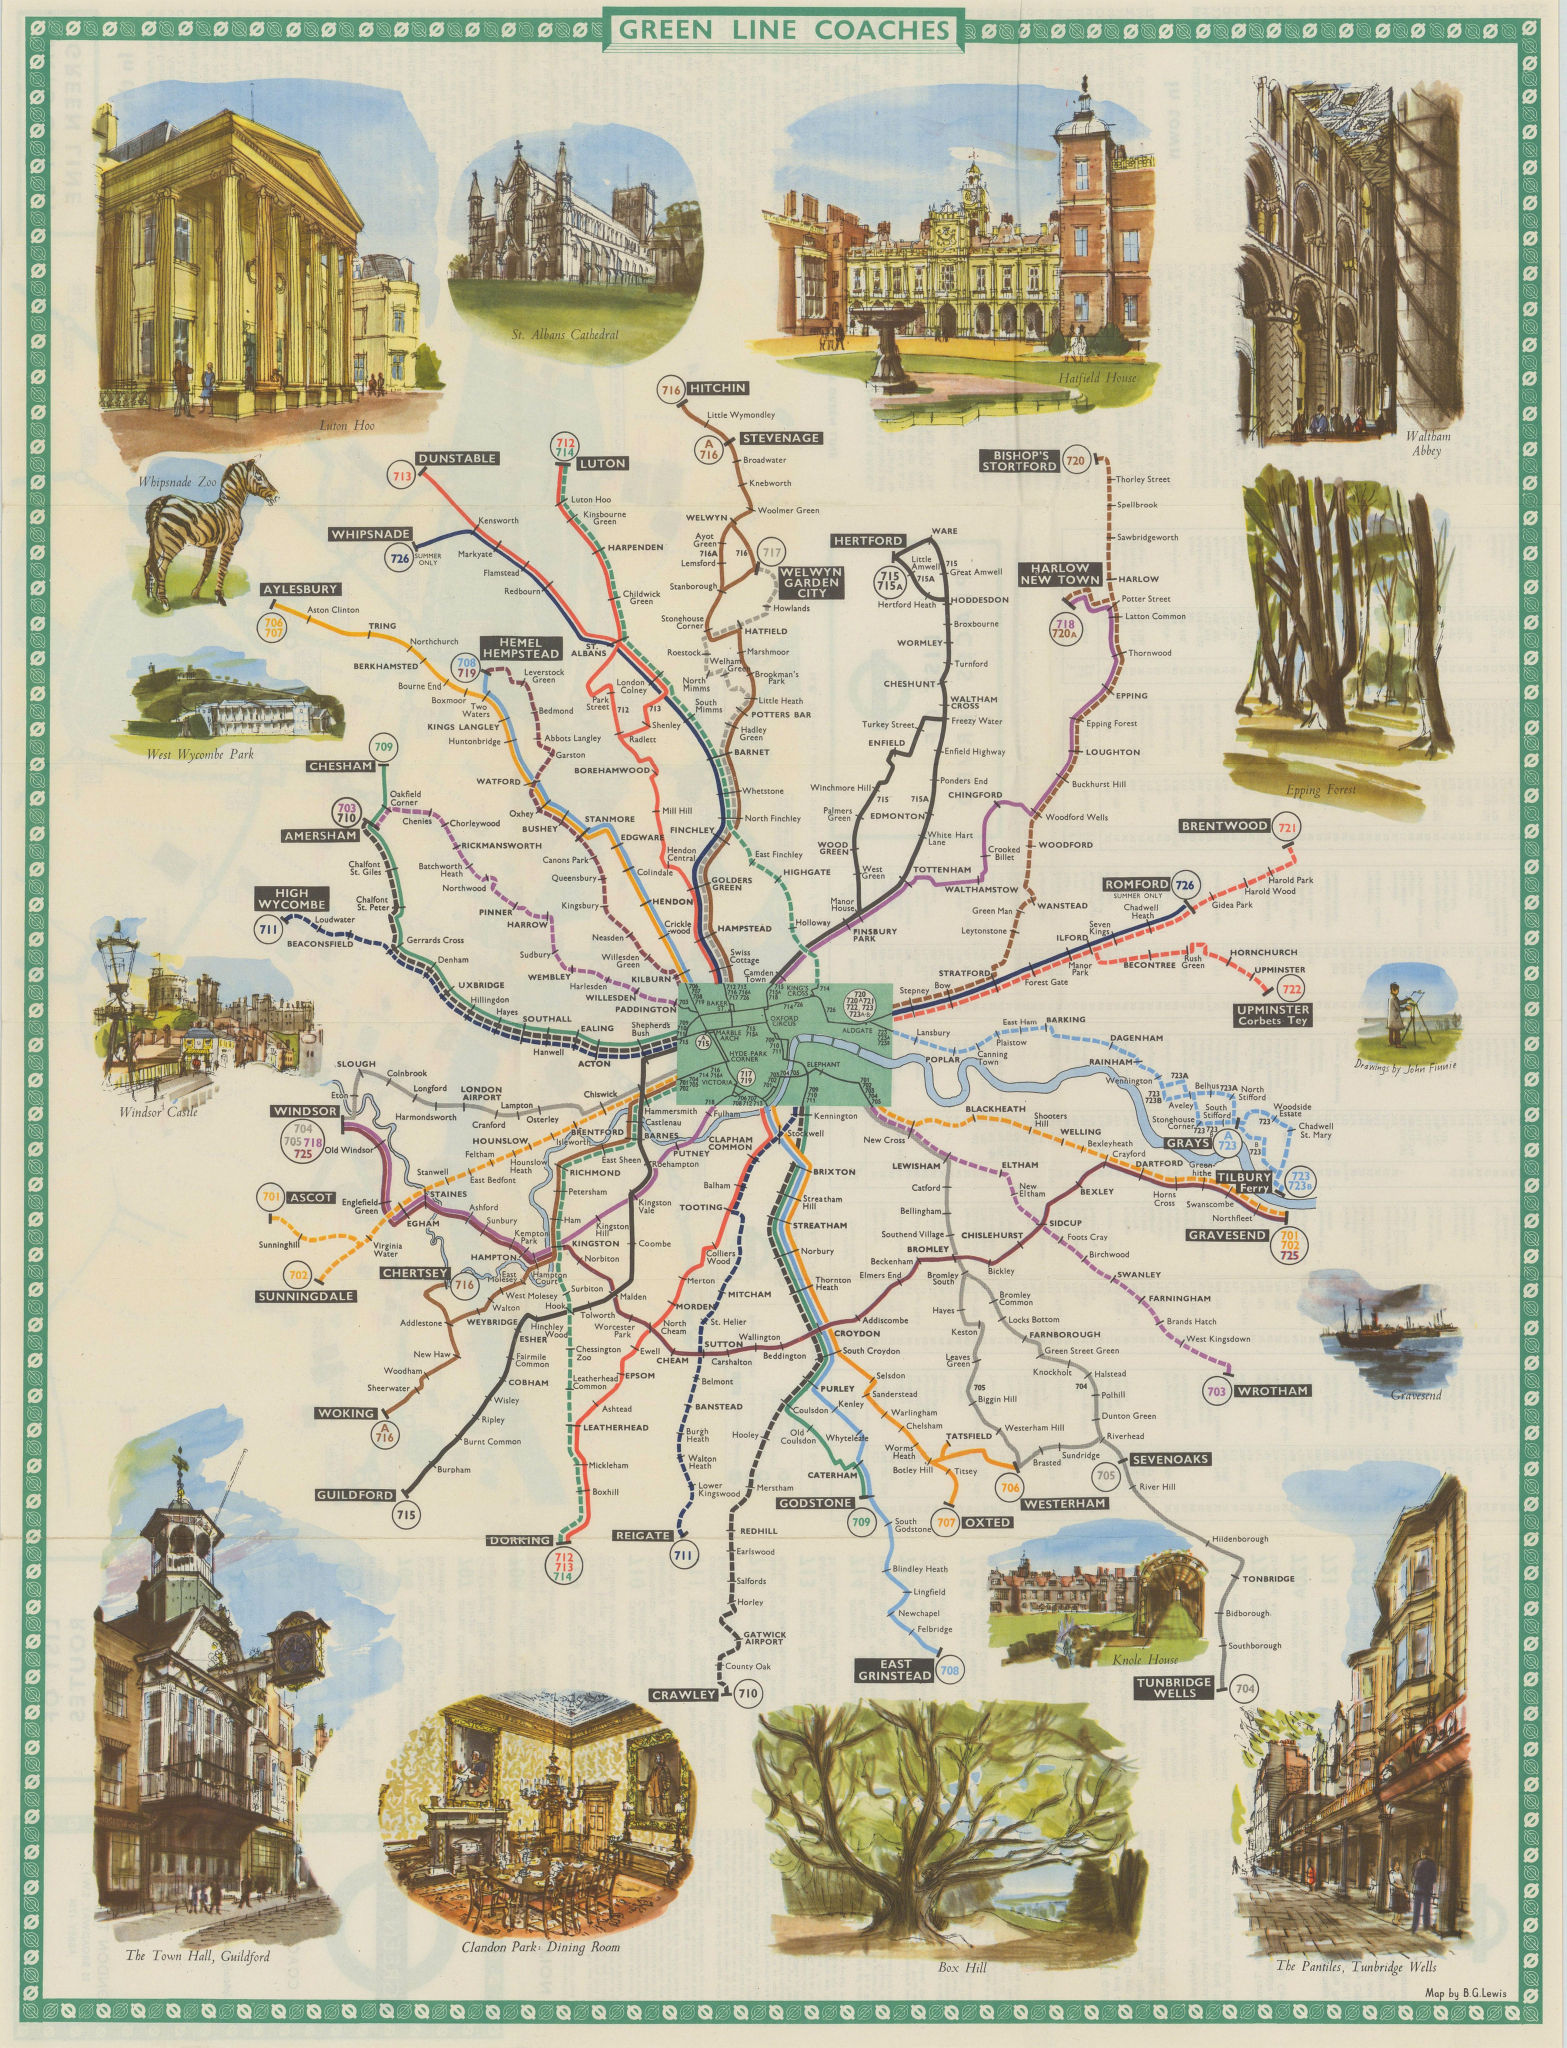 London Transport Green Line Coach Routes. LEWIS 1962 old vintage map chart